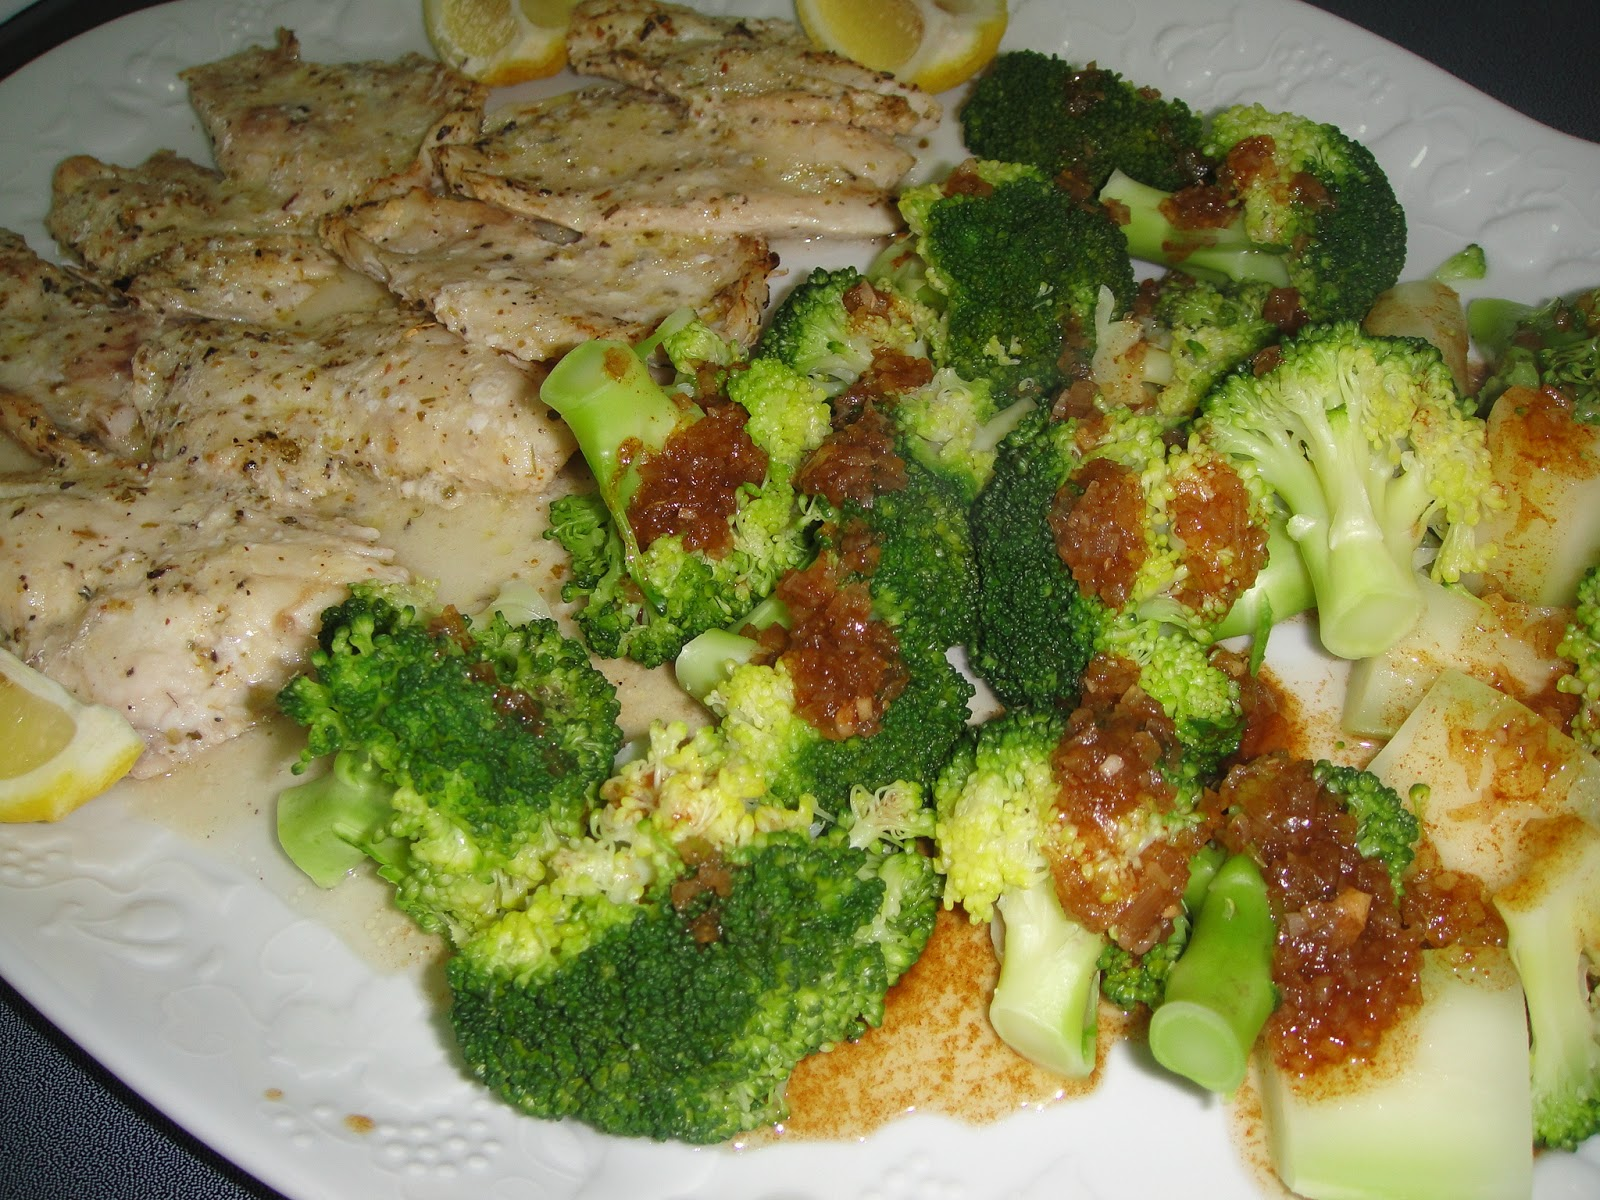 Maryam 39 s culinary wonders 262 baked rouget fish fillets for Fish and broccoli diet